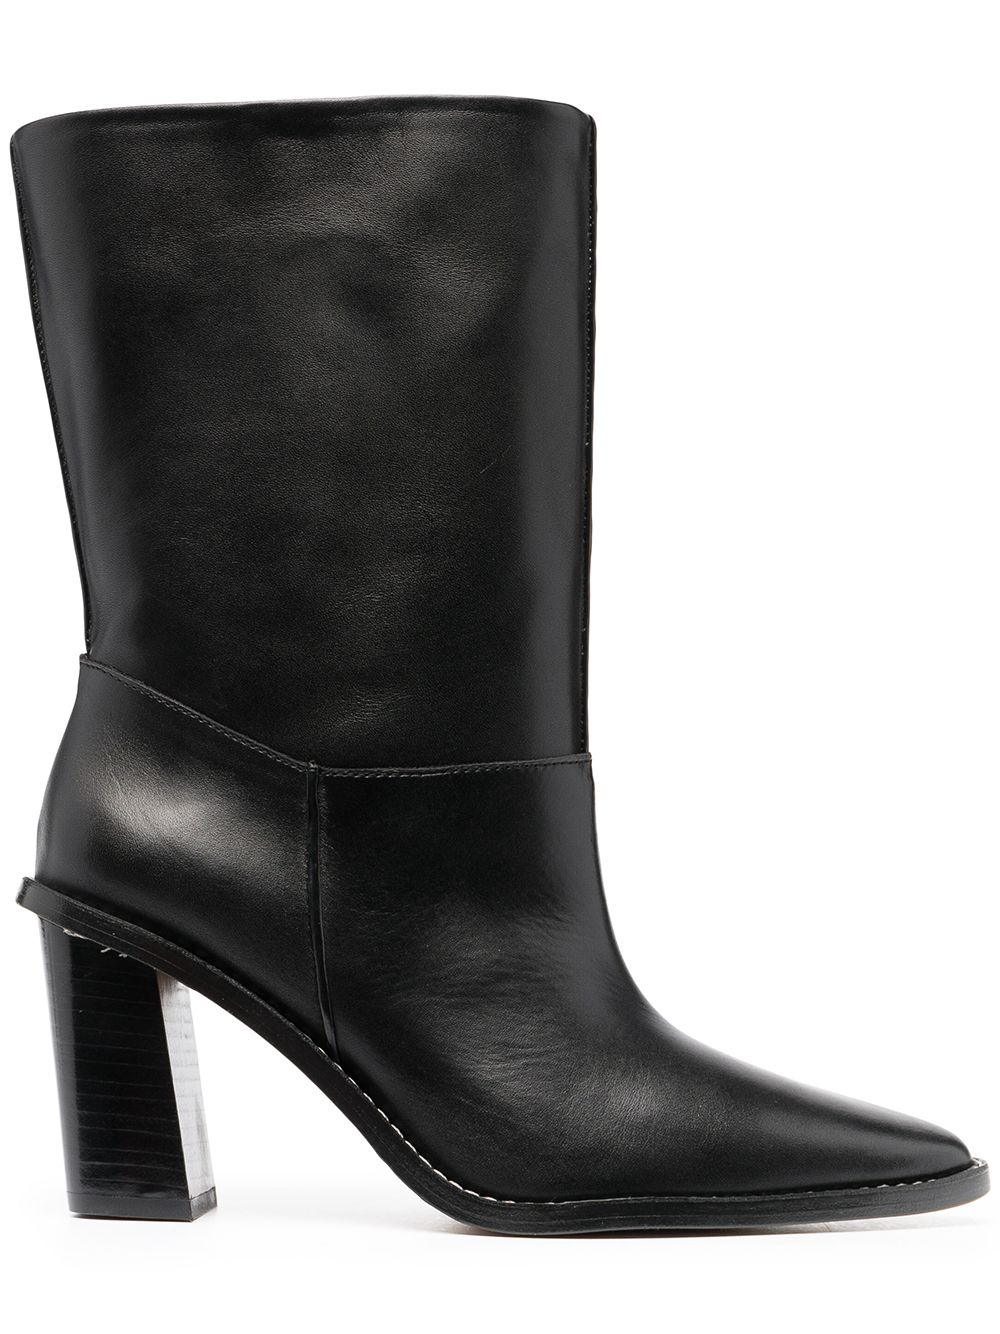 K Line Pointed-Toe Ankle Boots